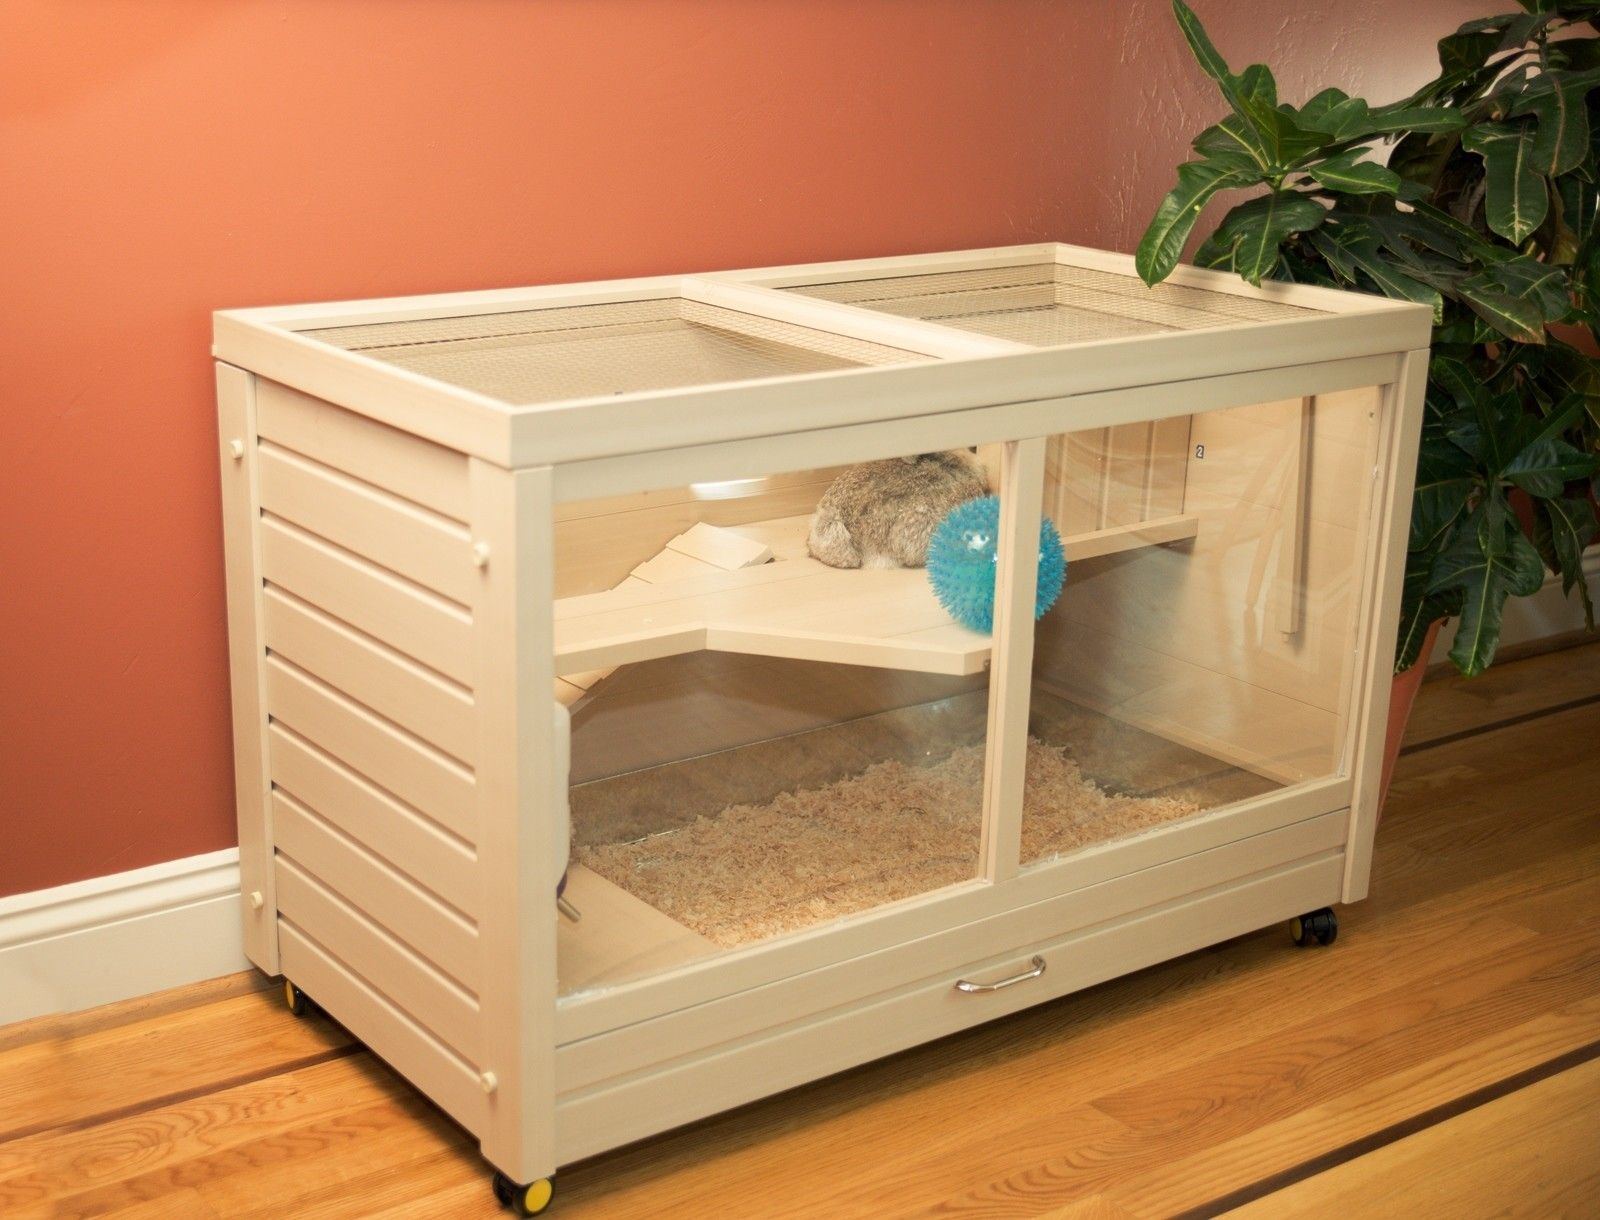 Park Avenue Indoor Small Animal Rabbit Hutch Parks, The